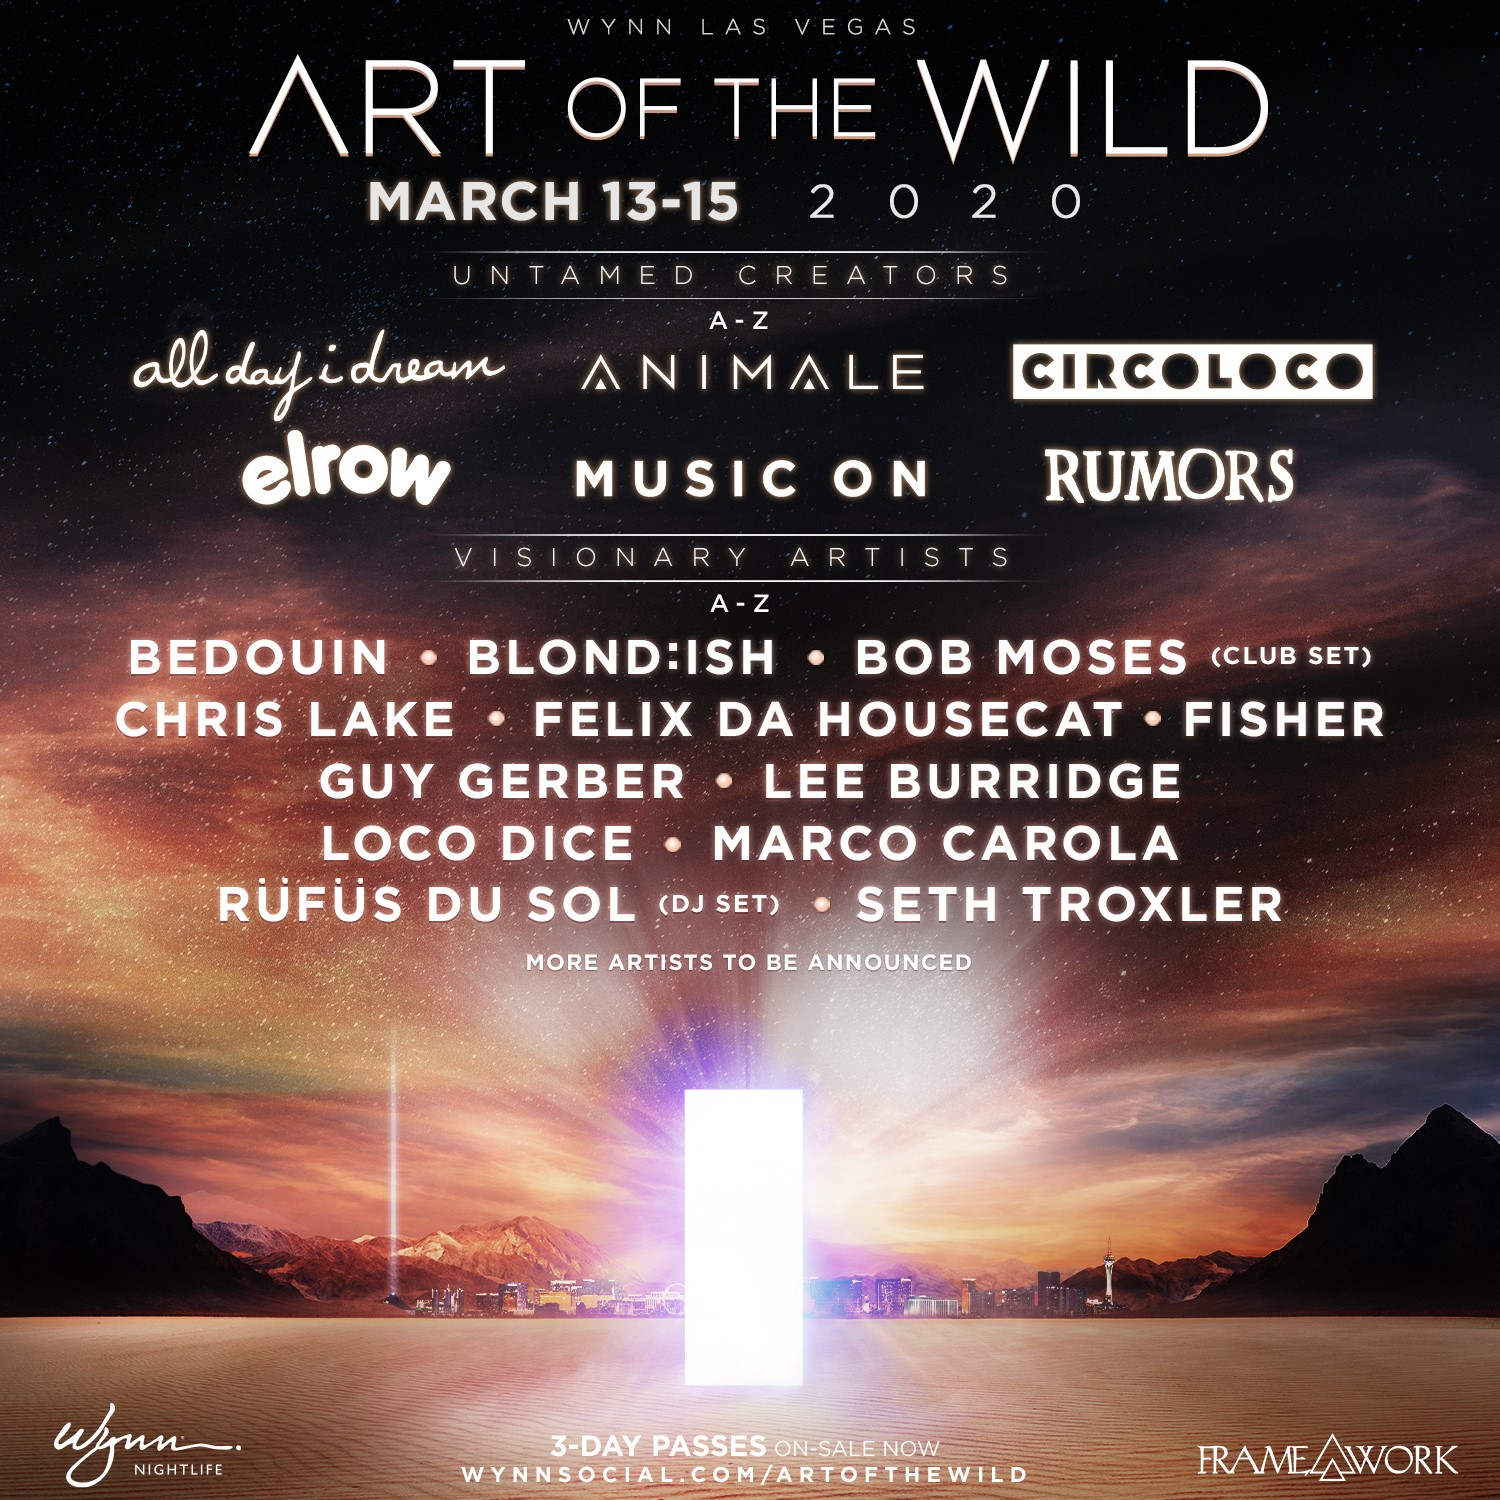 Art of the Wild 2020 Spring Lineup